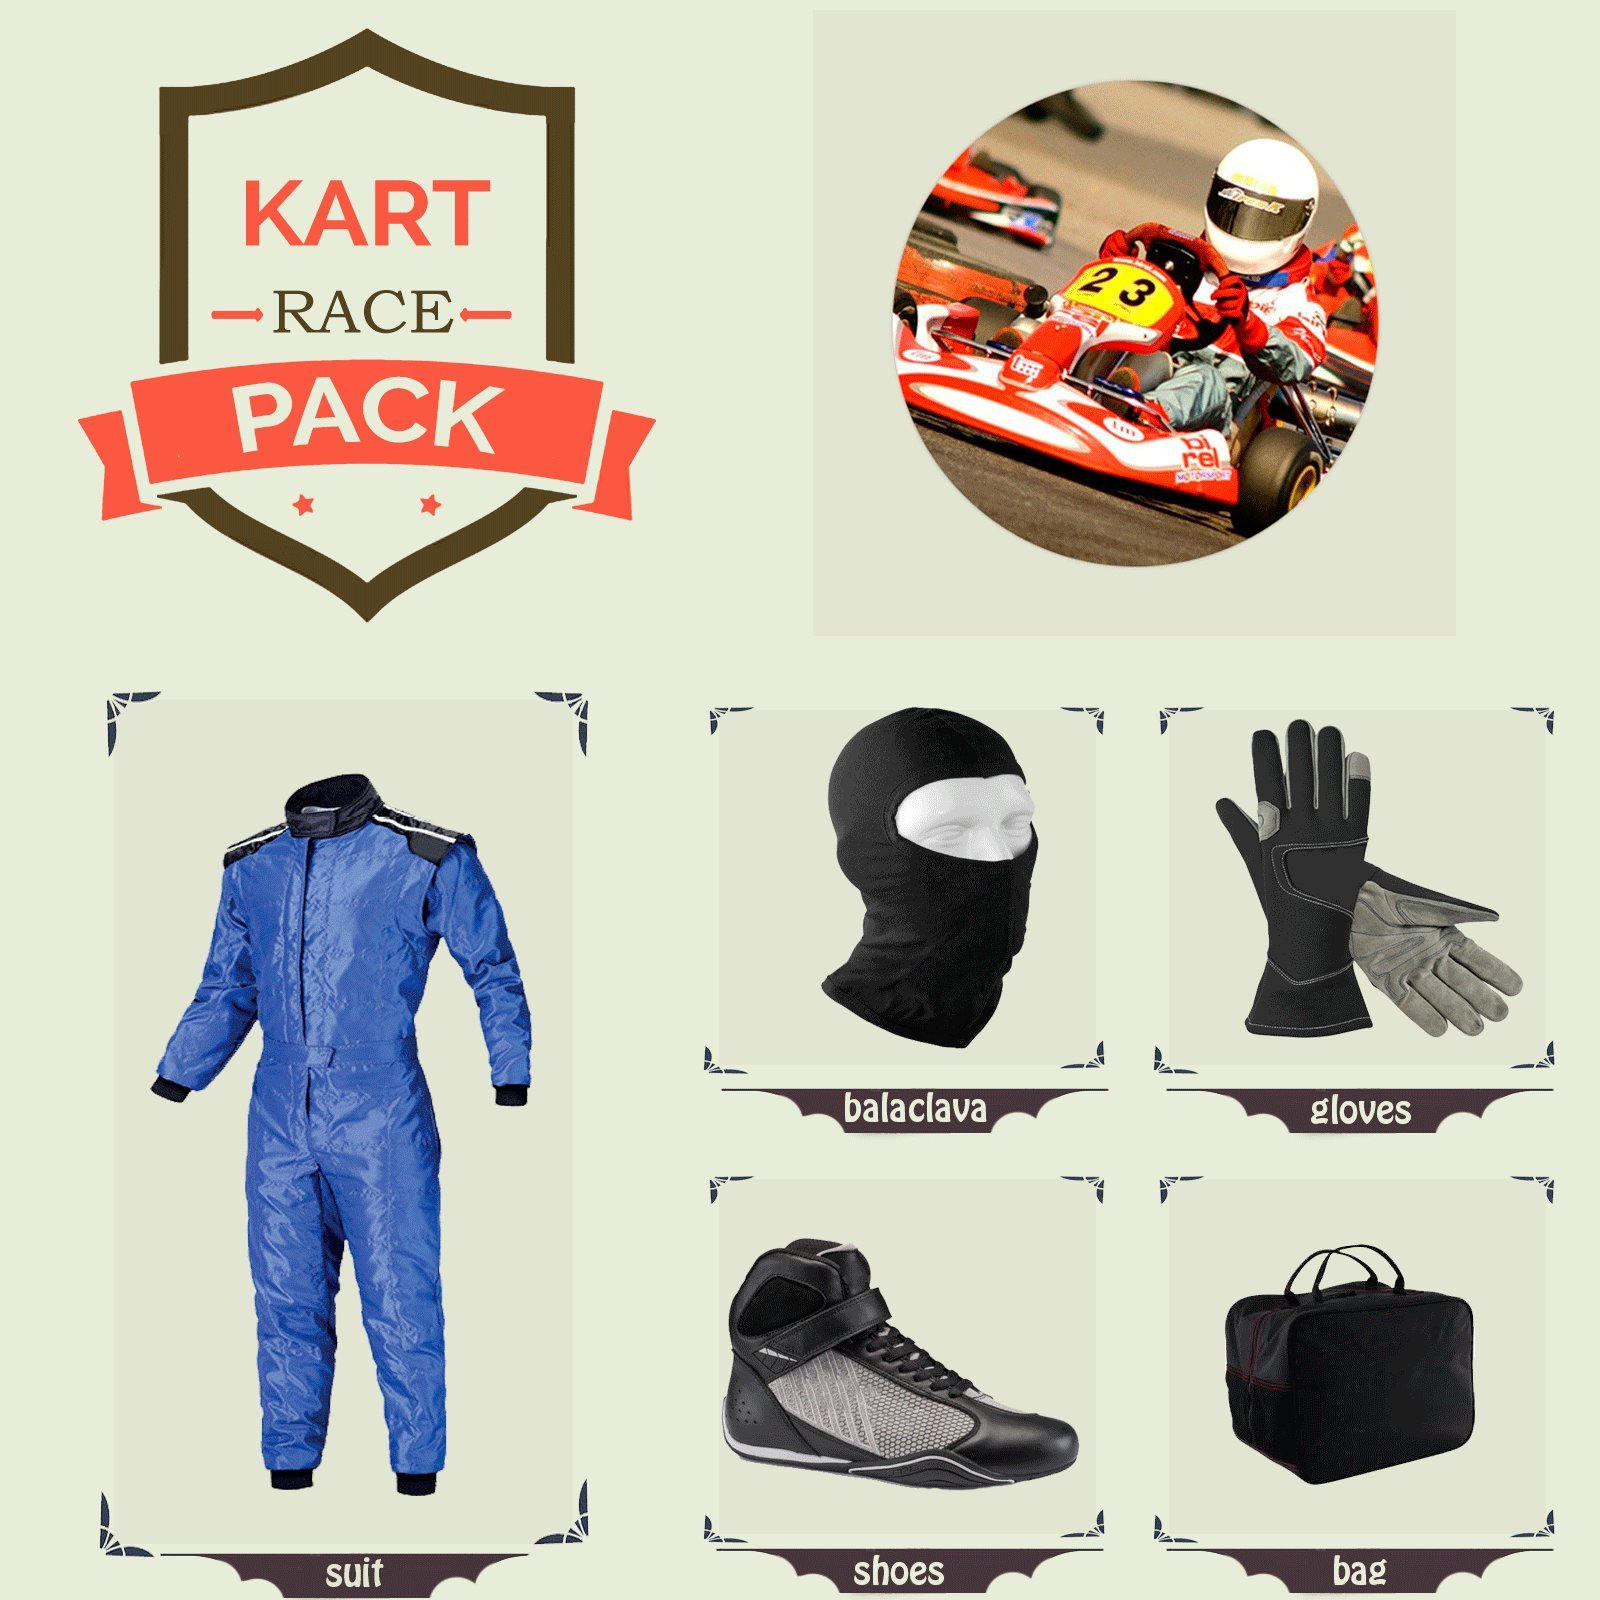 Sports Blue Go Kart Racing Suit Suit,Gloves,Balaclava and Shoes free bag - Blue Lining Drees With Black Style